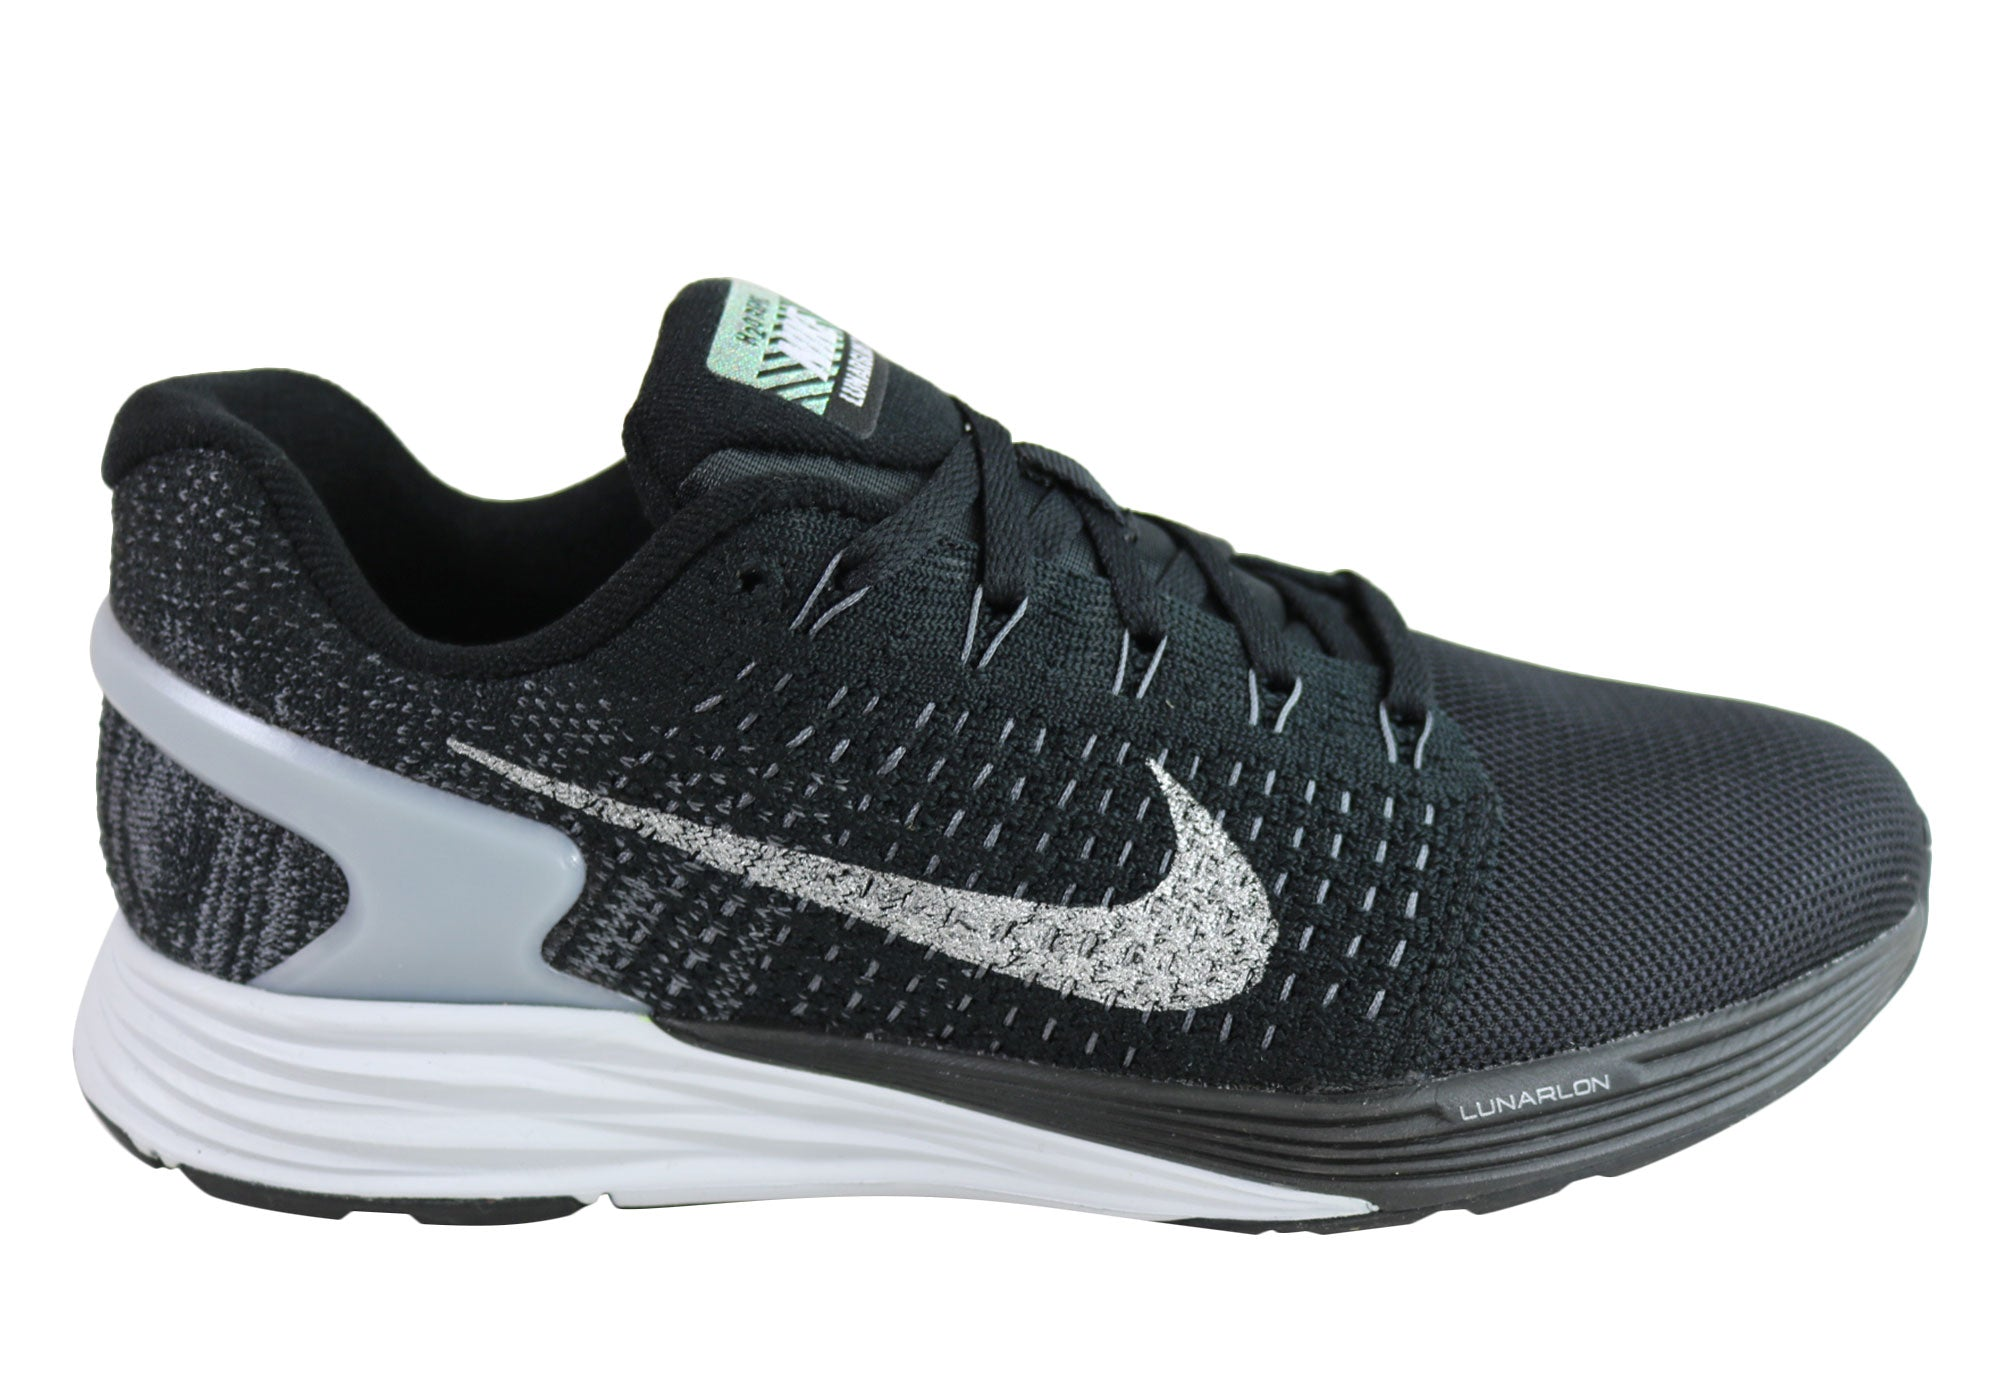 info for 5dcdf 061a3 Nike Lunarglide 7 Womens Cushioned Light Weight Running ...